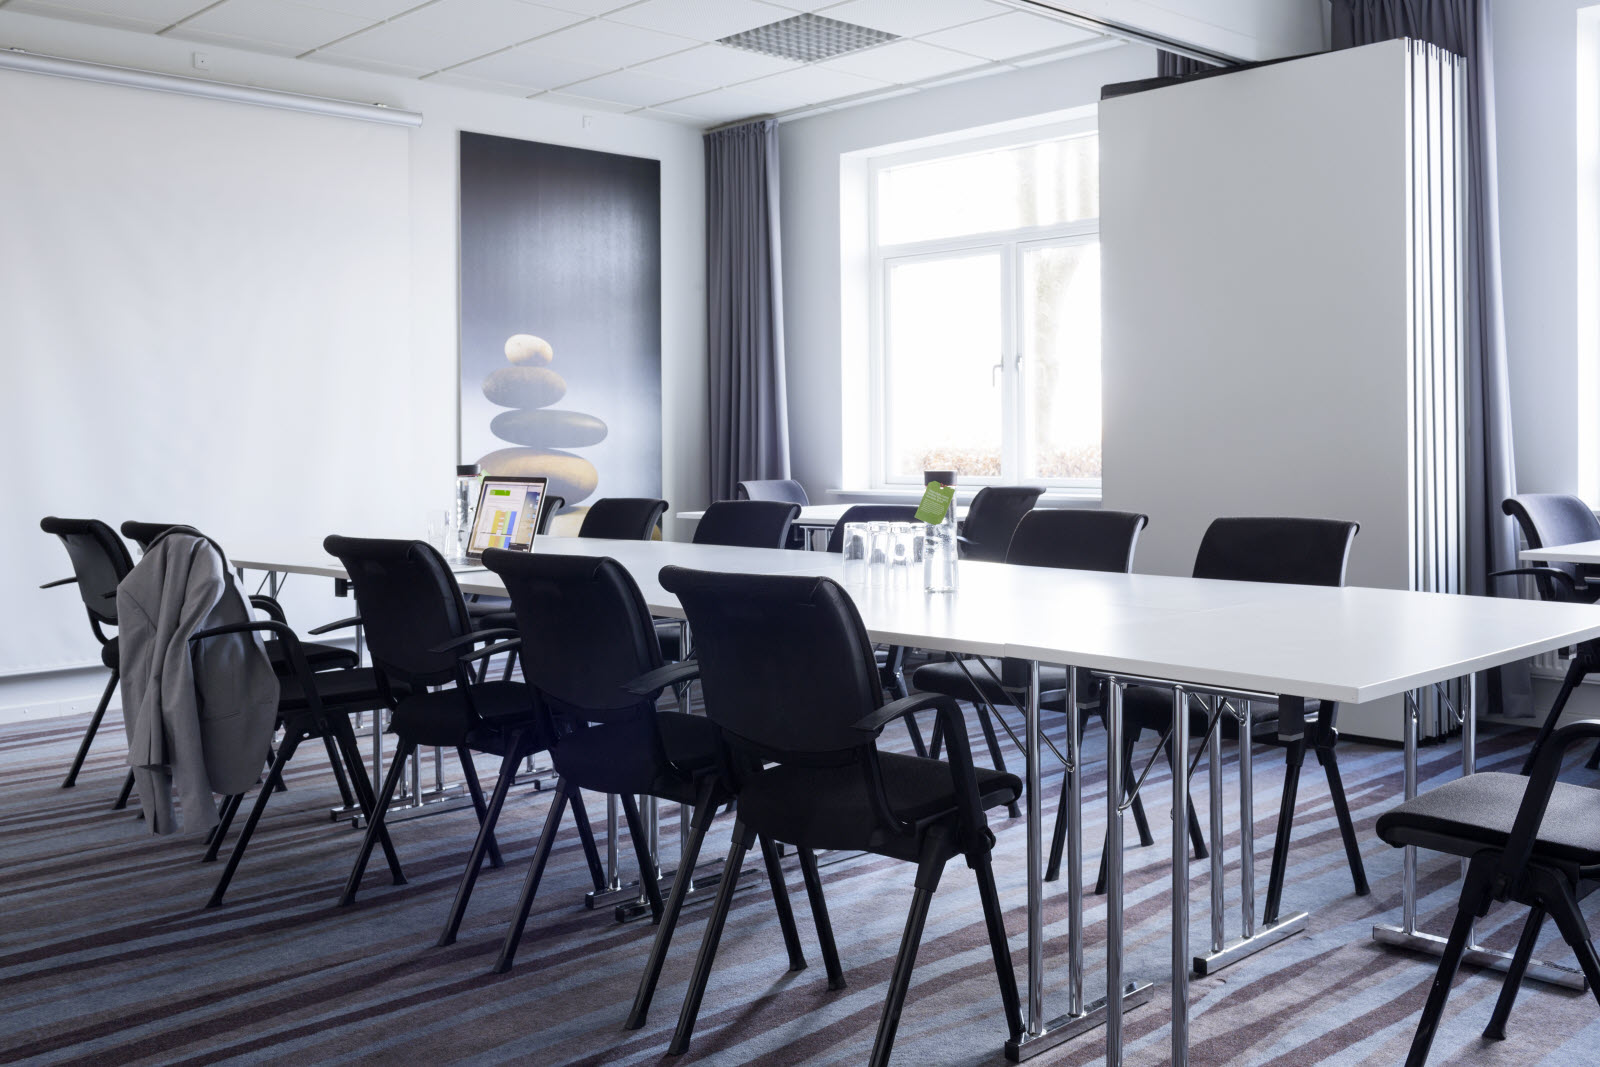 Meeting Room - Grouproom 1 & 2